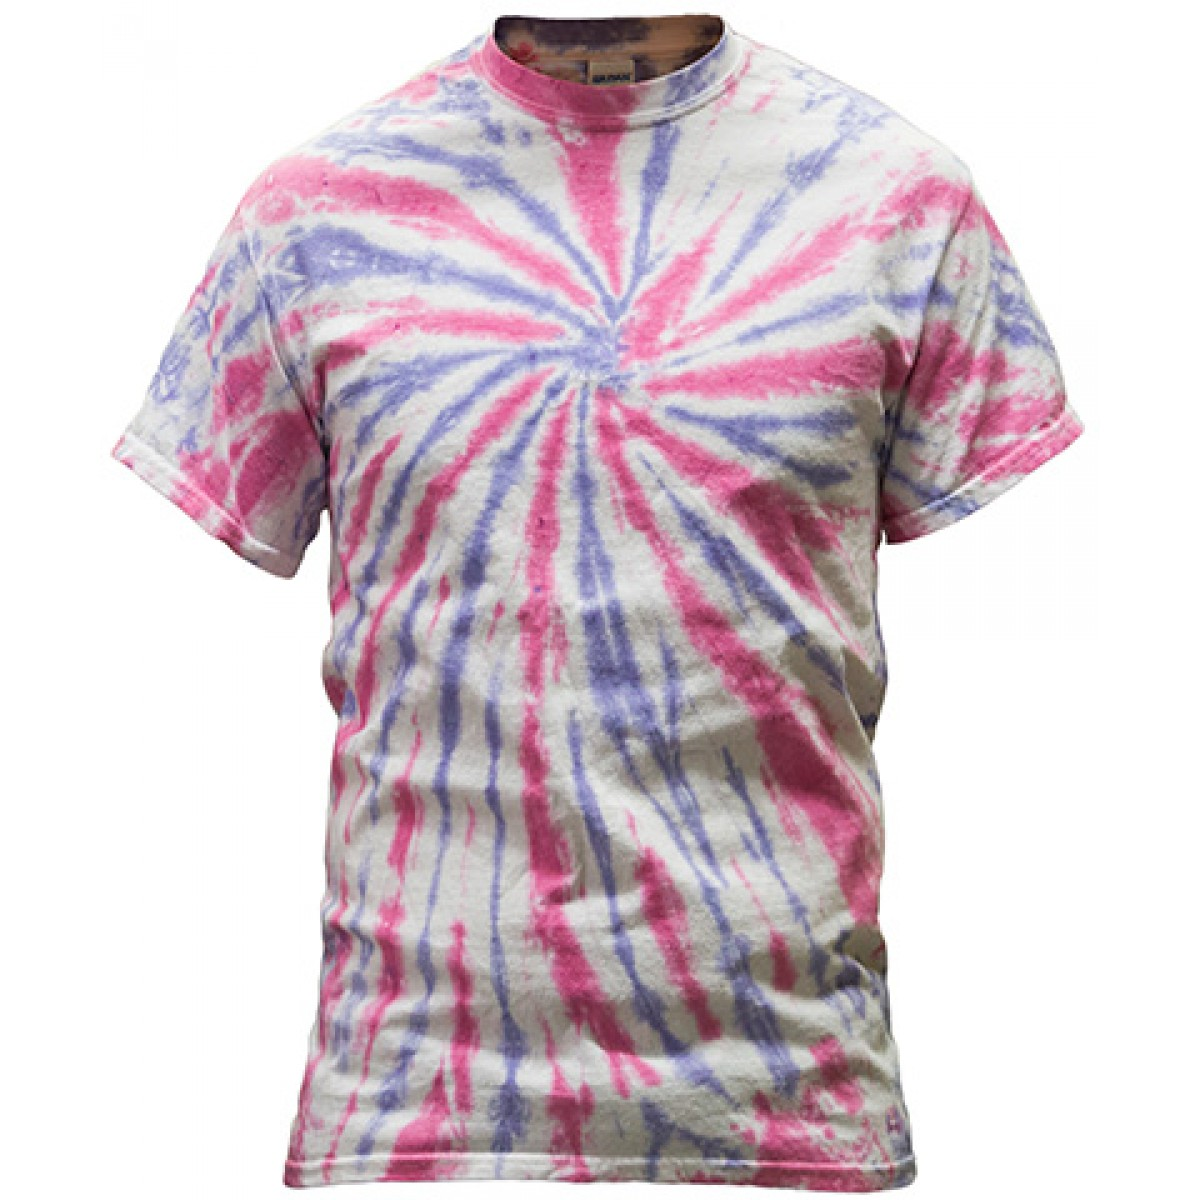 Multi-Color Tie-Dye Tee -Pink/Purple-M